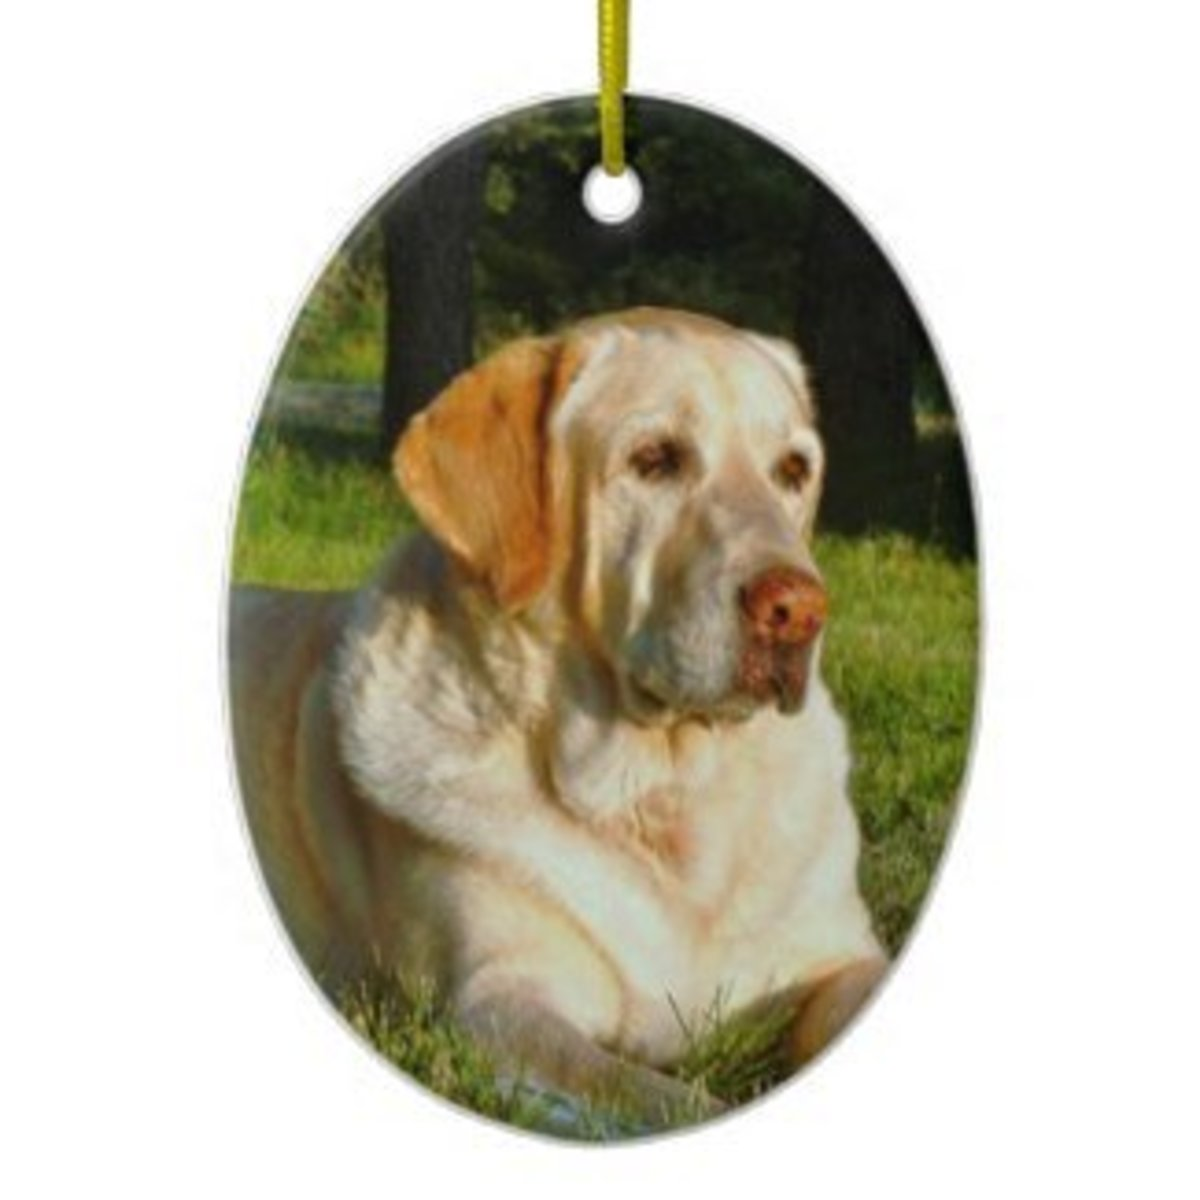 A Personalized Memory Ornament